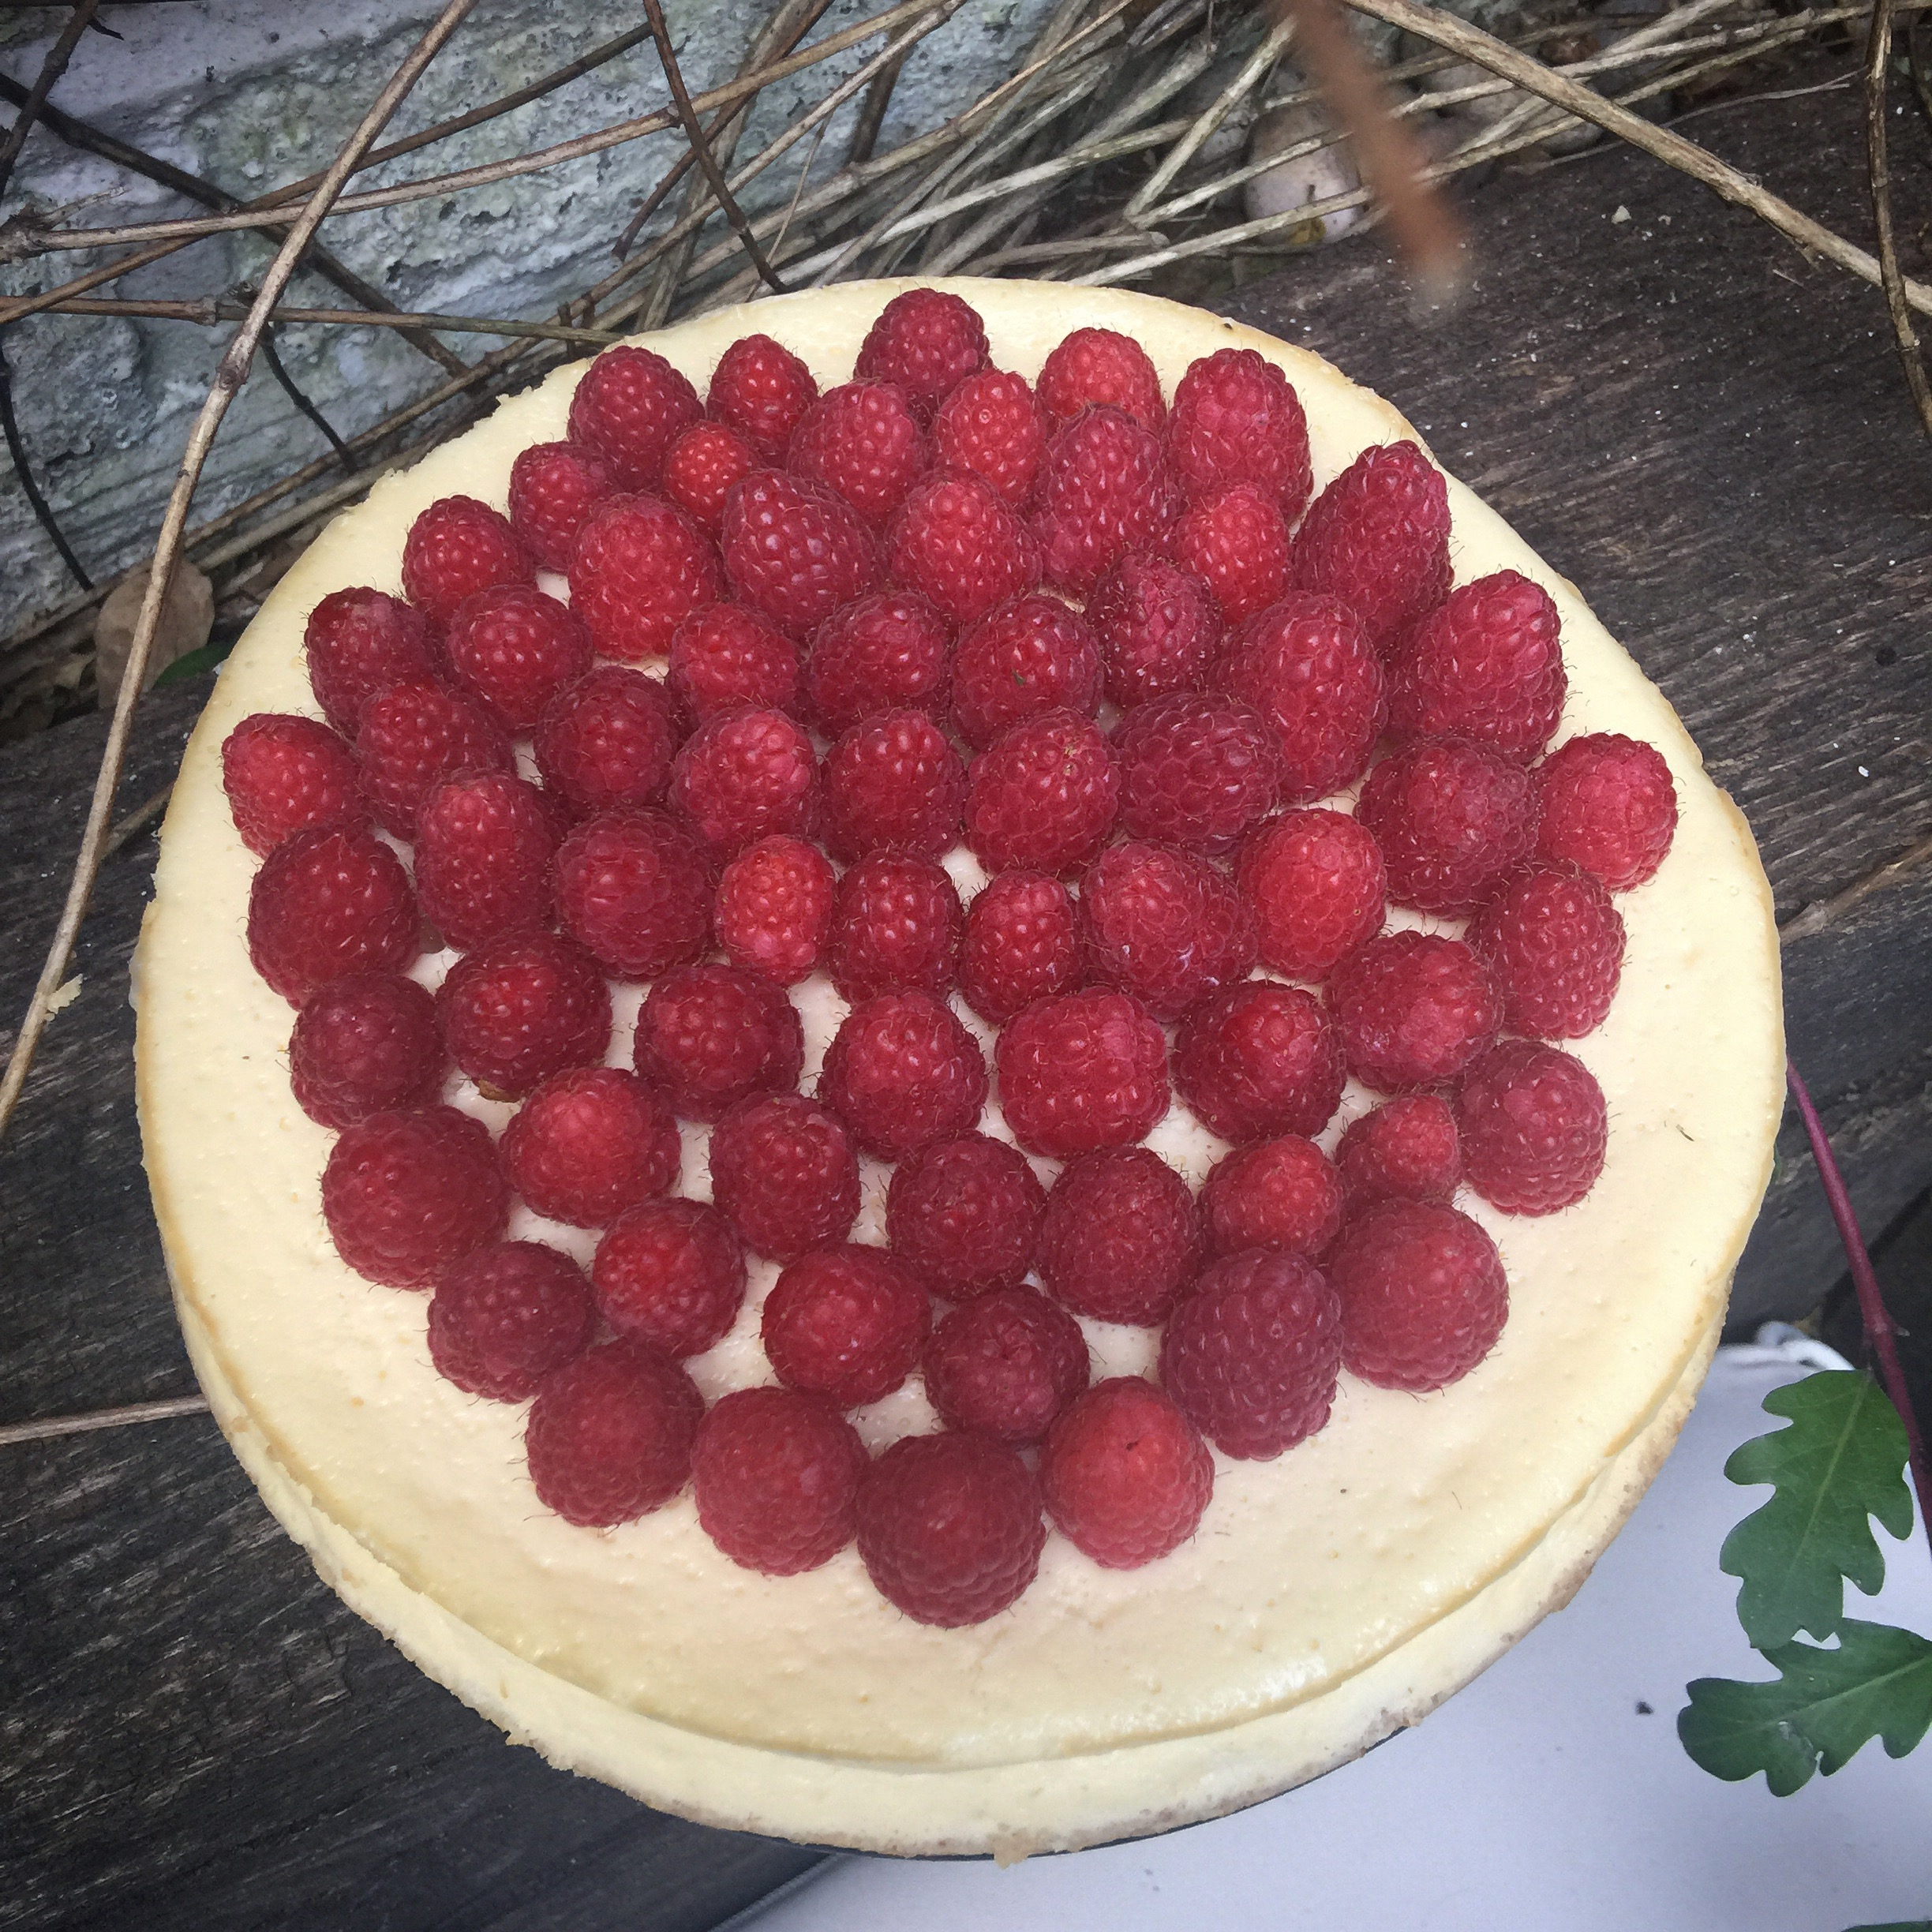 Baked Vanilla Cheesecake with Raspberries